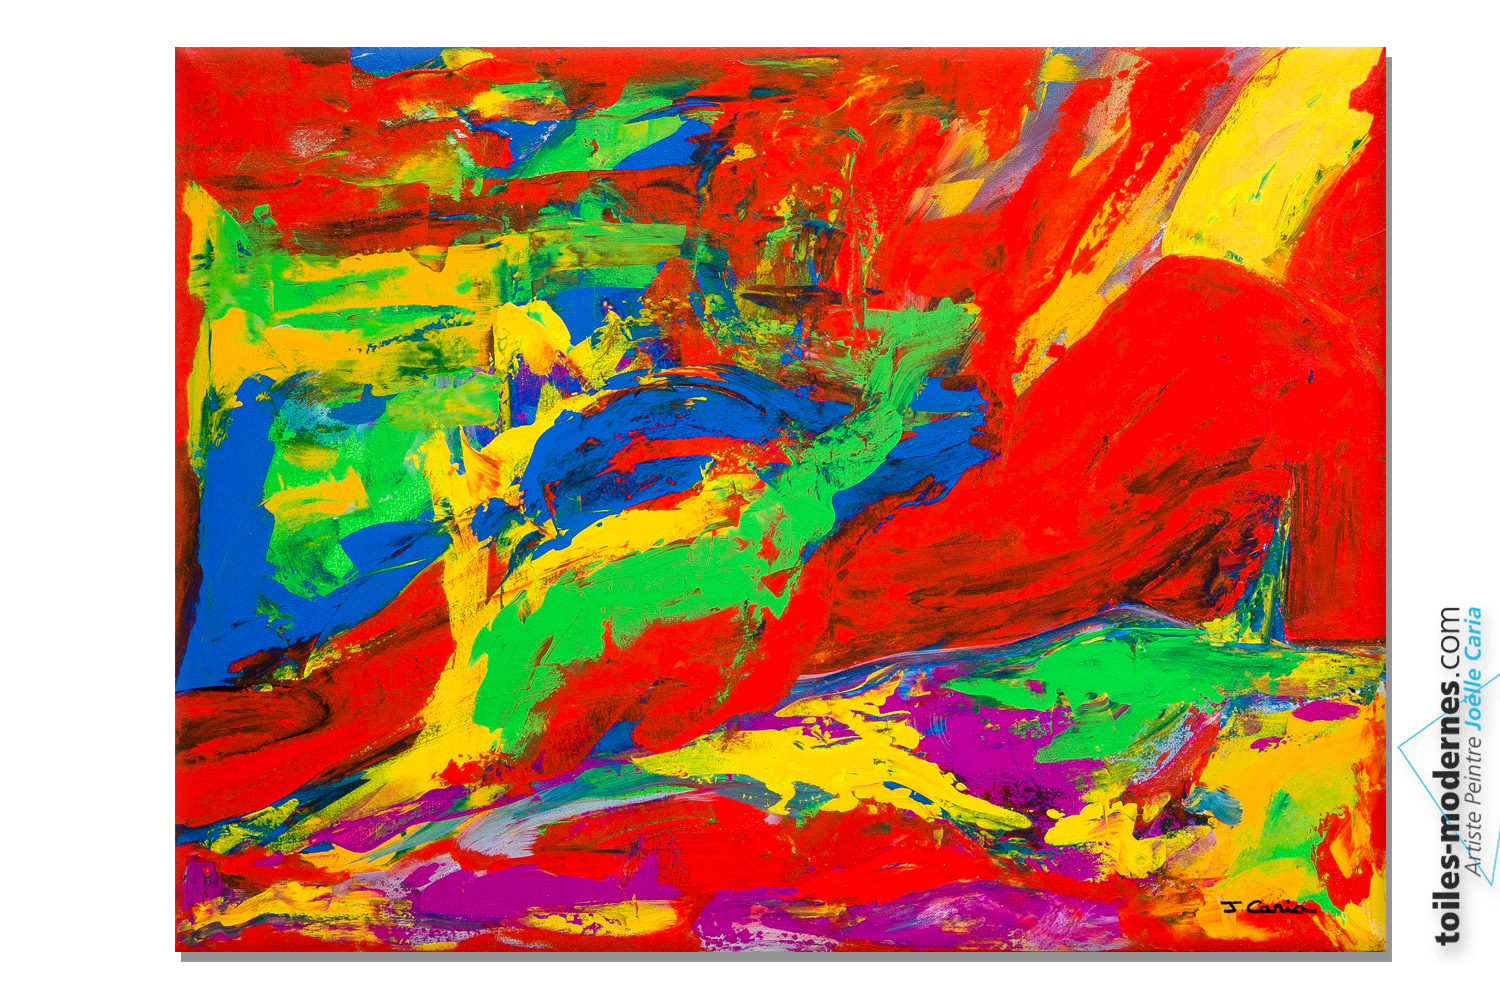 Tableau nu abstrait color femme allong e - Tableau colore moderne ...